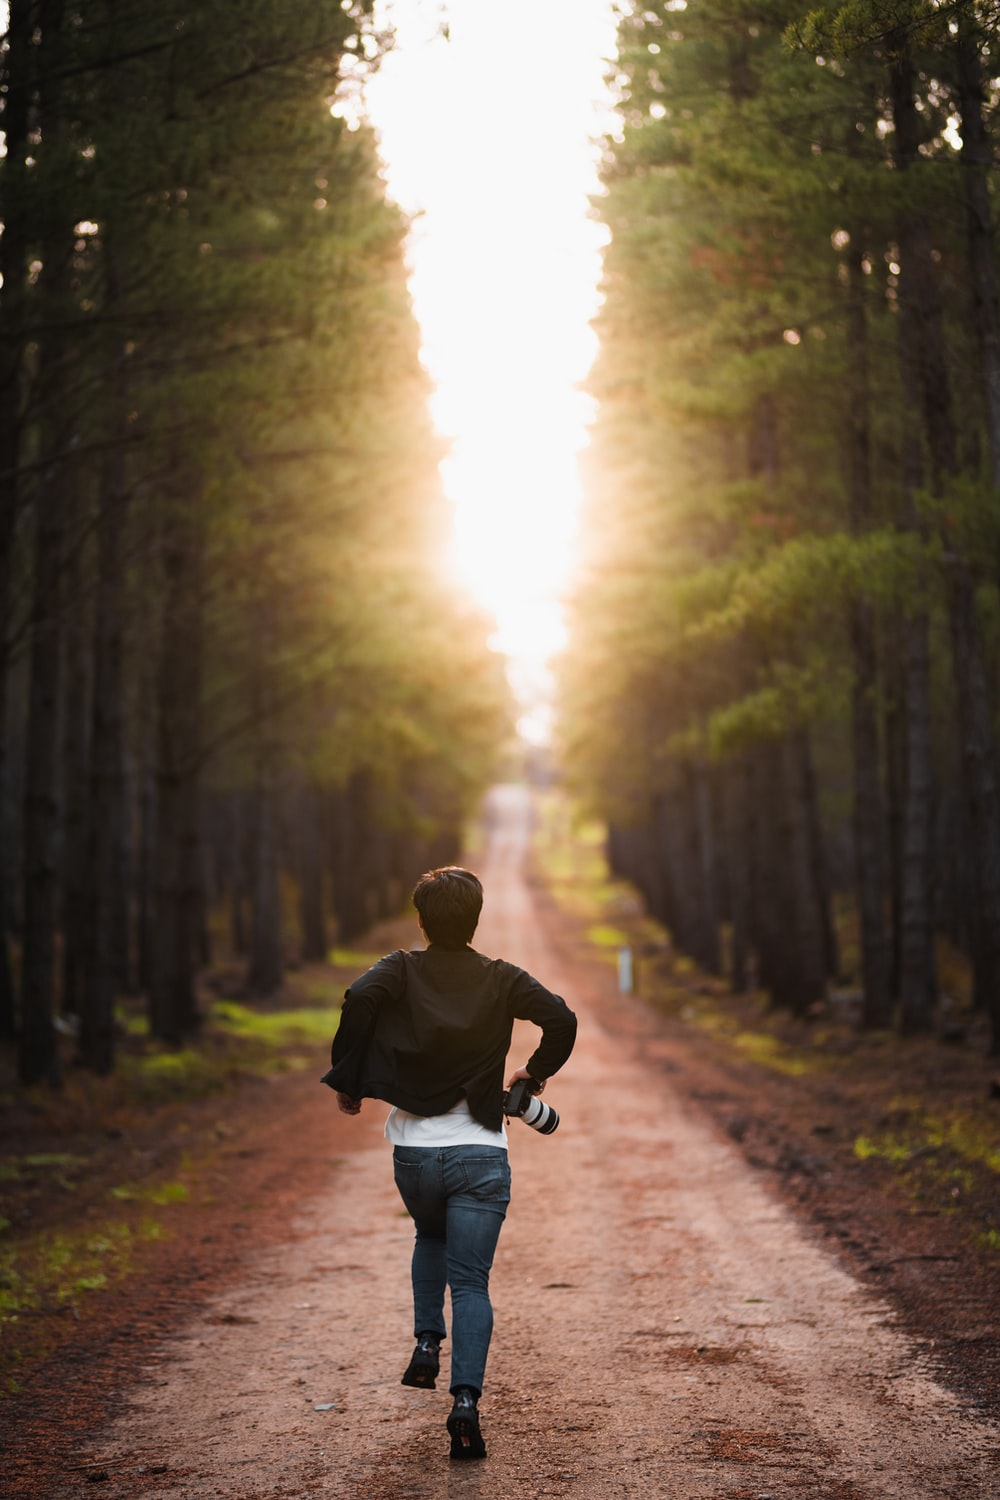 man in black jacket and blue denim jeans walking on pathway between trees during daytime